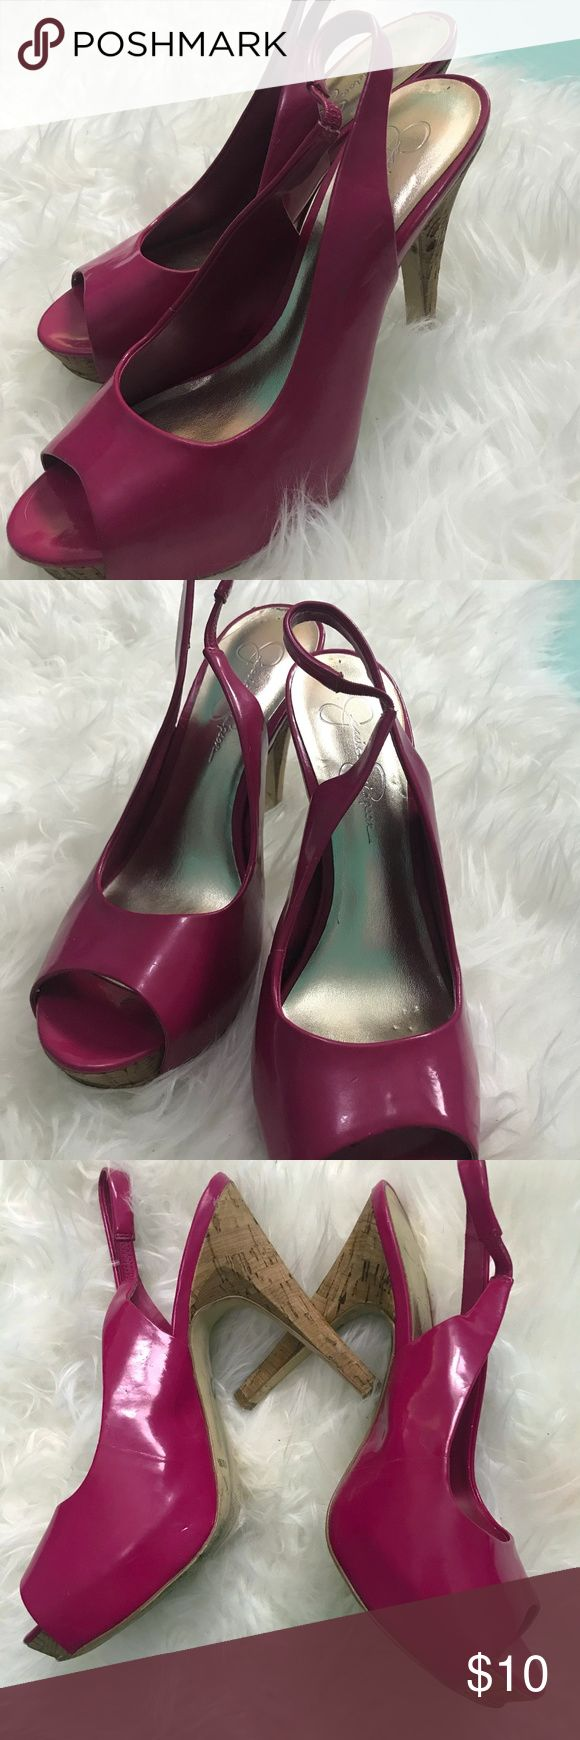 Jessica Simpson Pink Patent Leather Cork Heel 8.5 Jessica simpson AGYNESS 2 Hot Pink Patent CORK HEEL pump. 5 inch heel height. Super cute and fun.  In great pre owned condition. Jessica Simpson Shoes Heels